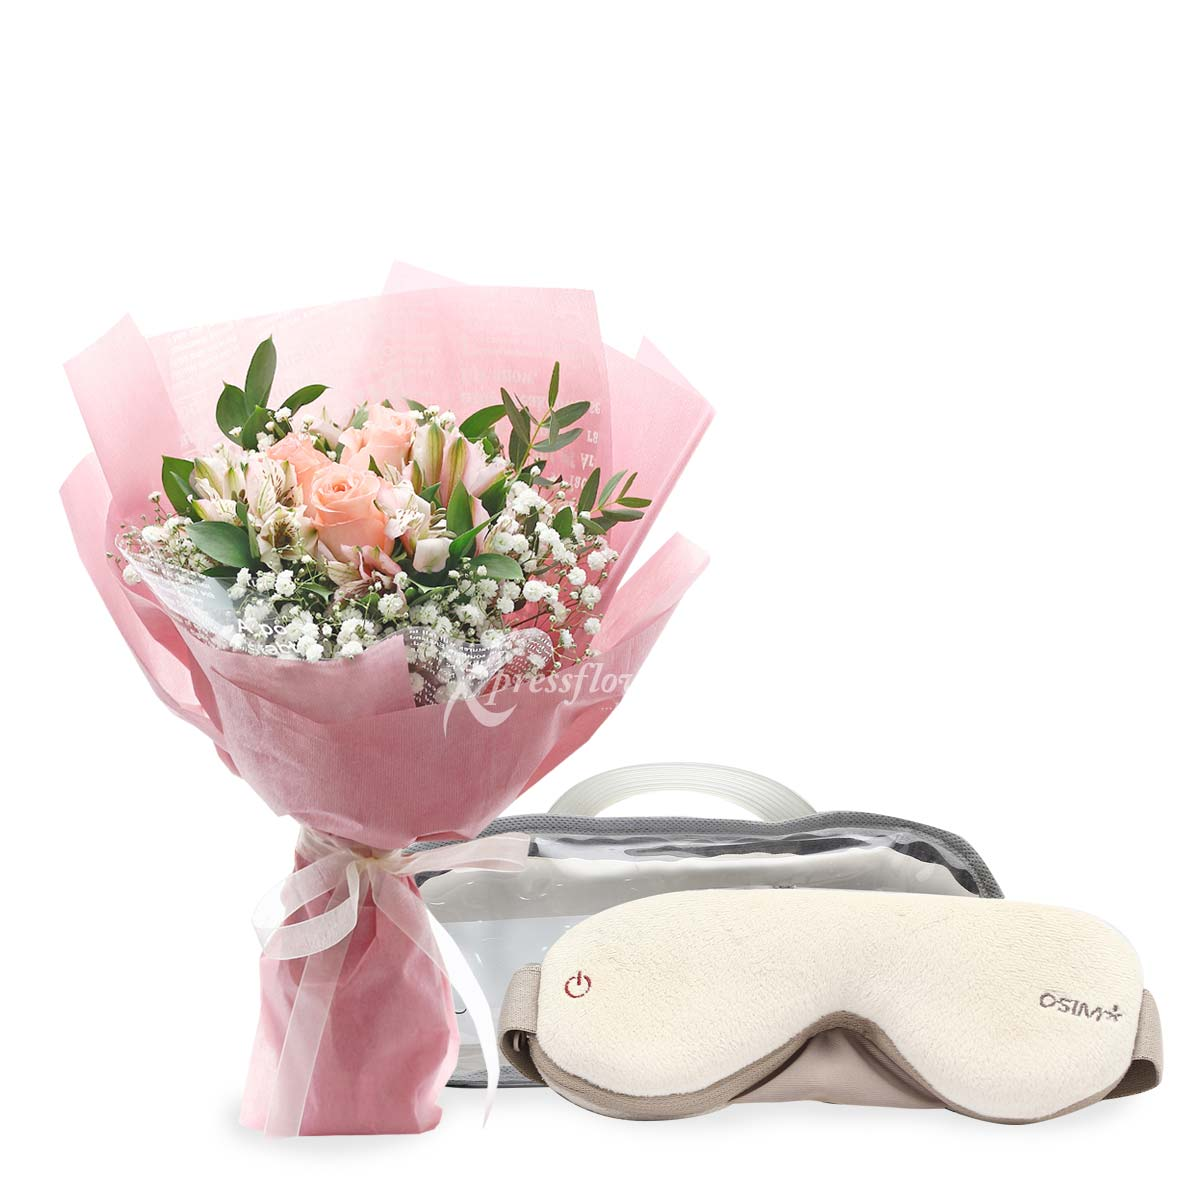 OS1805F uMask Eye Massager